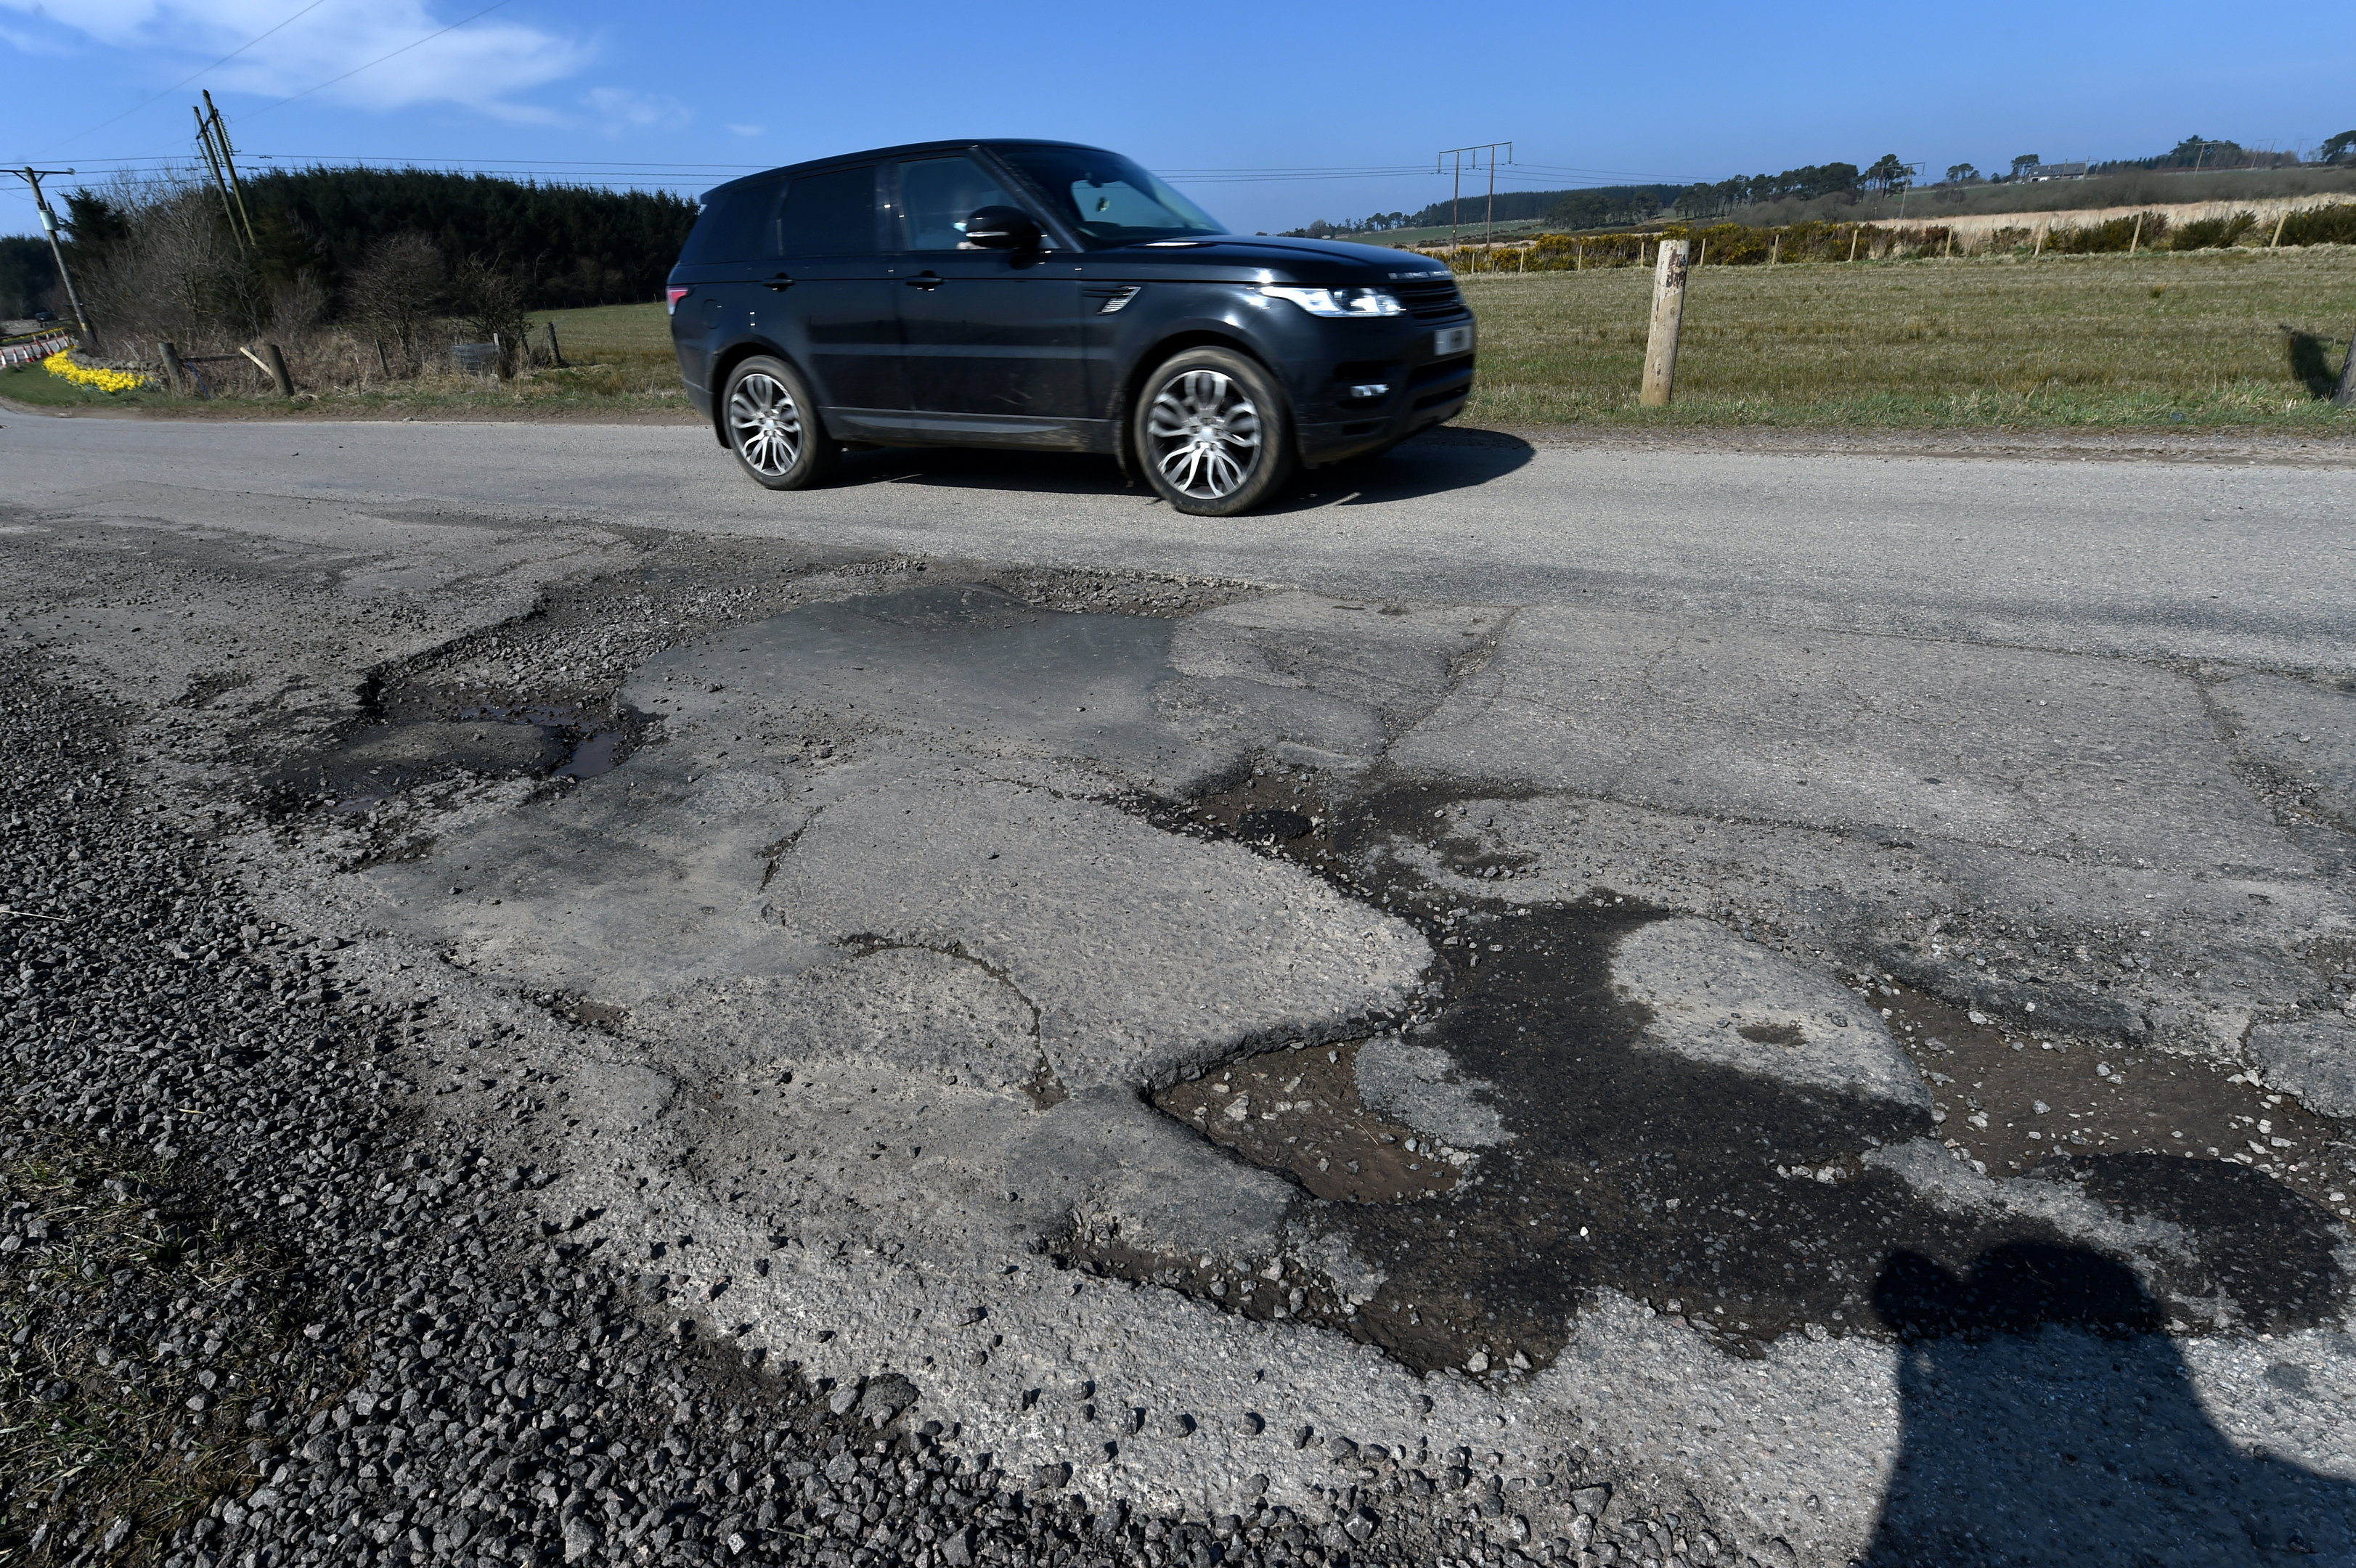 Just some of the potholes on the B979 Netherly road.